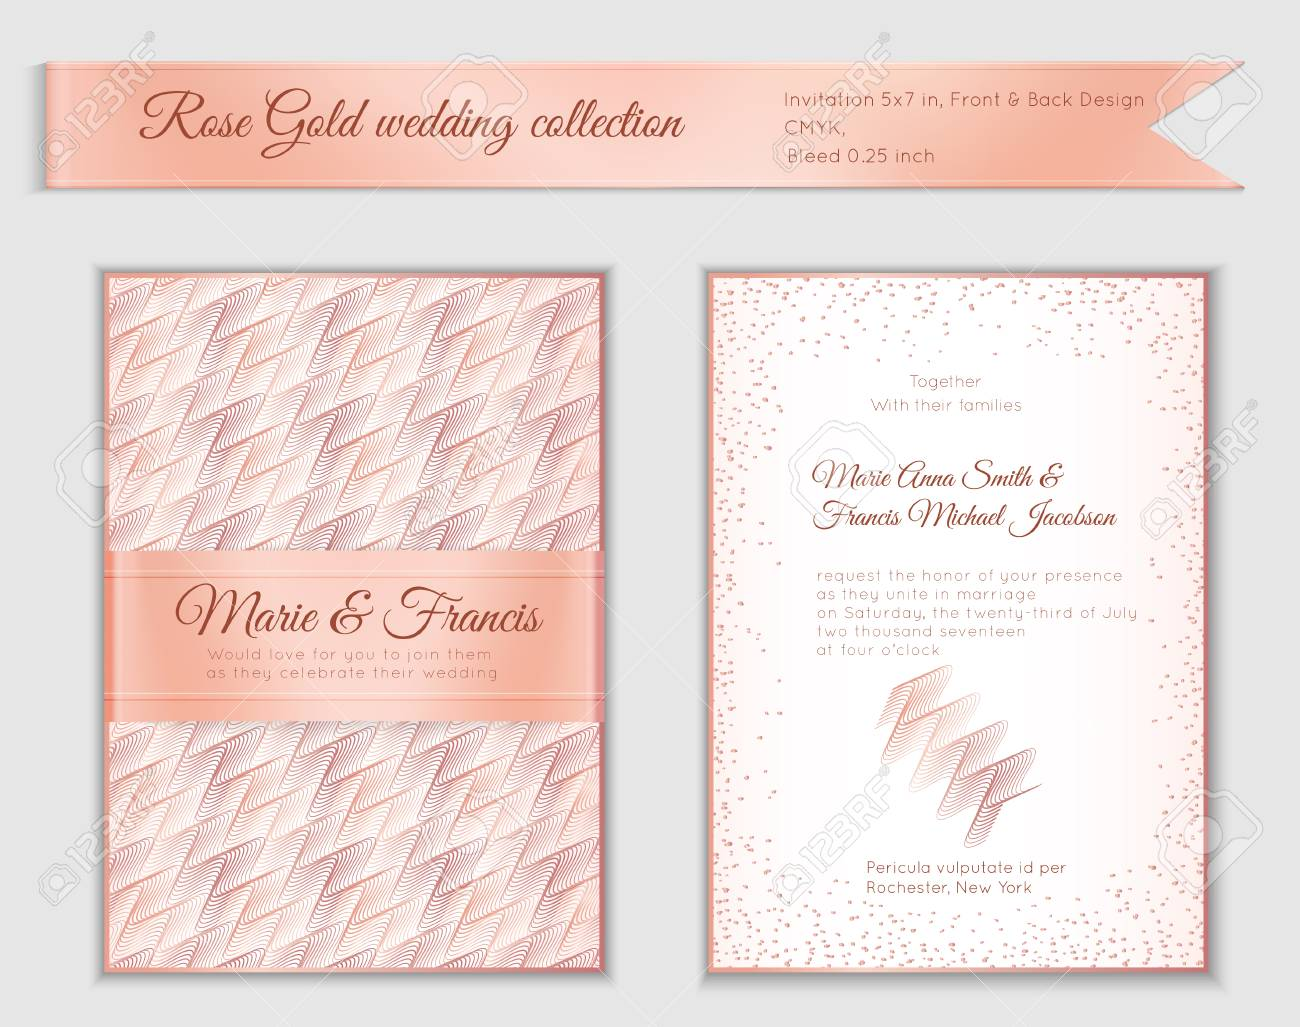 Luxury Wedding Invitation Template With Rose Gold Shiny Realistic - Free 5x7 invitation template